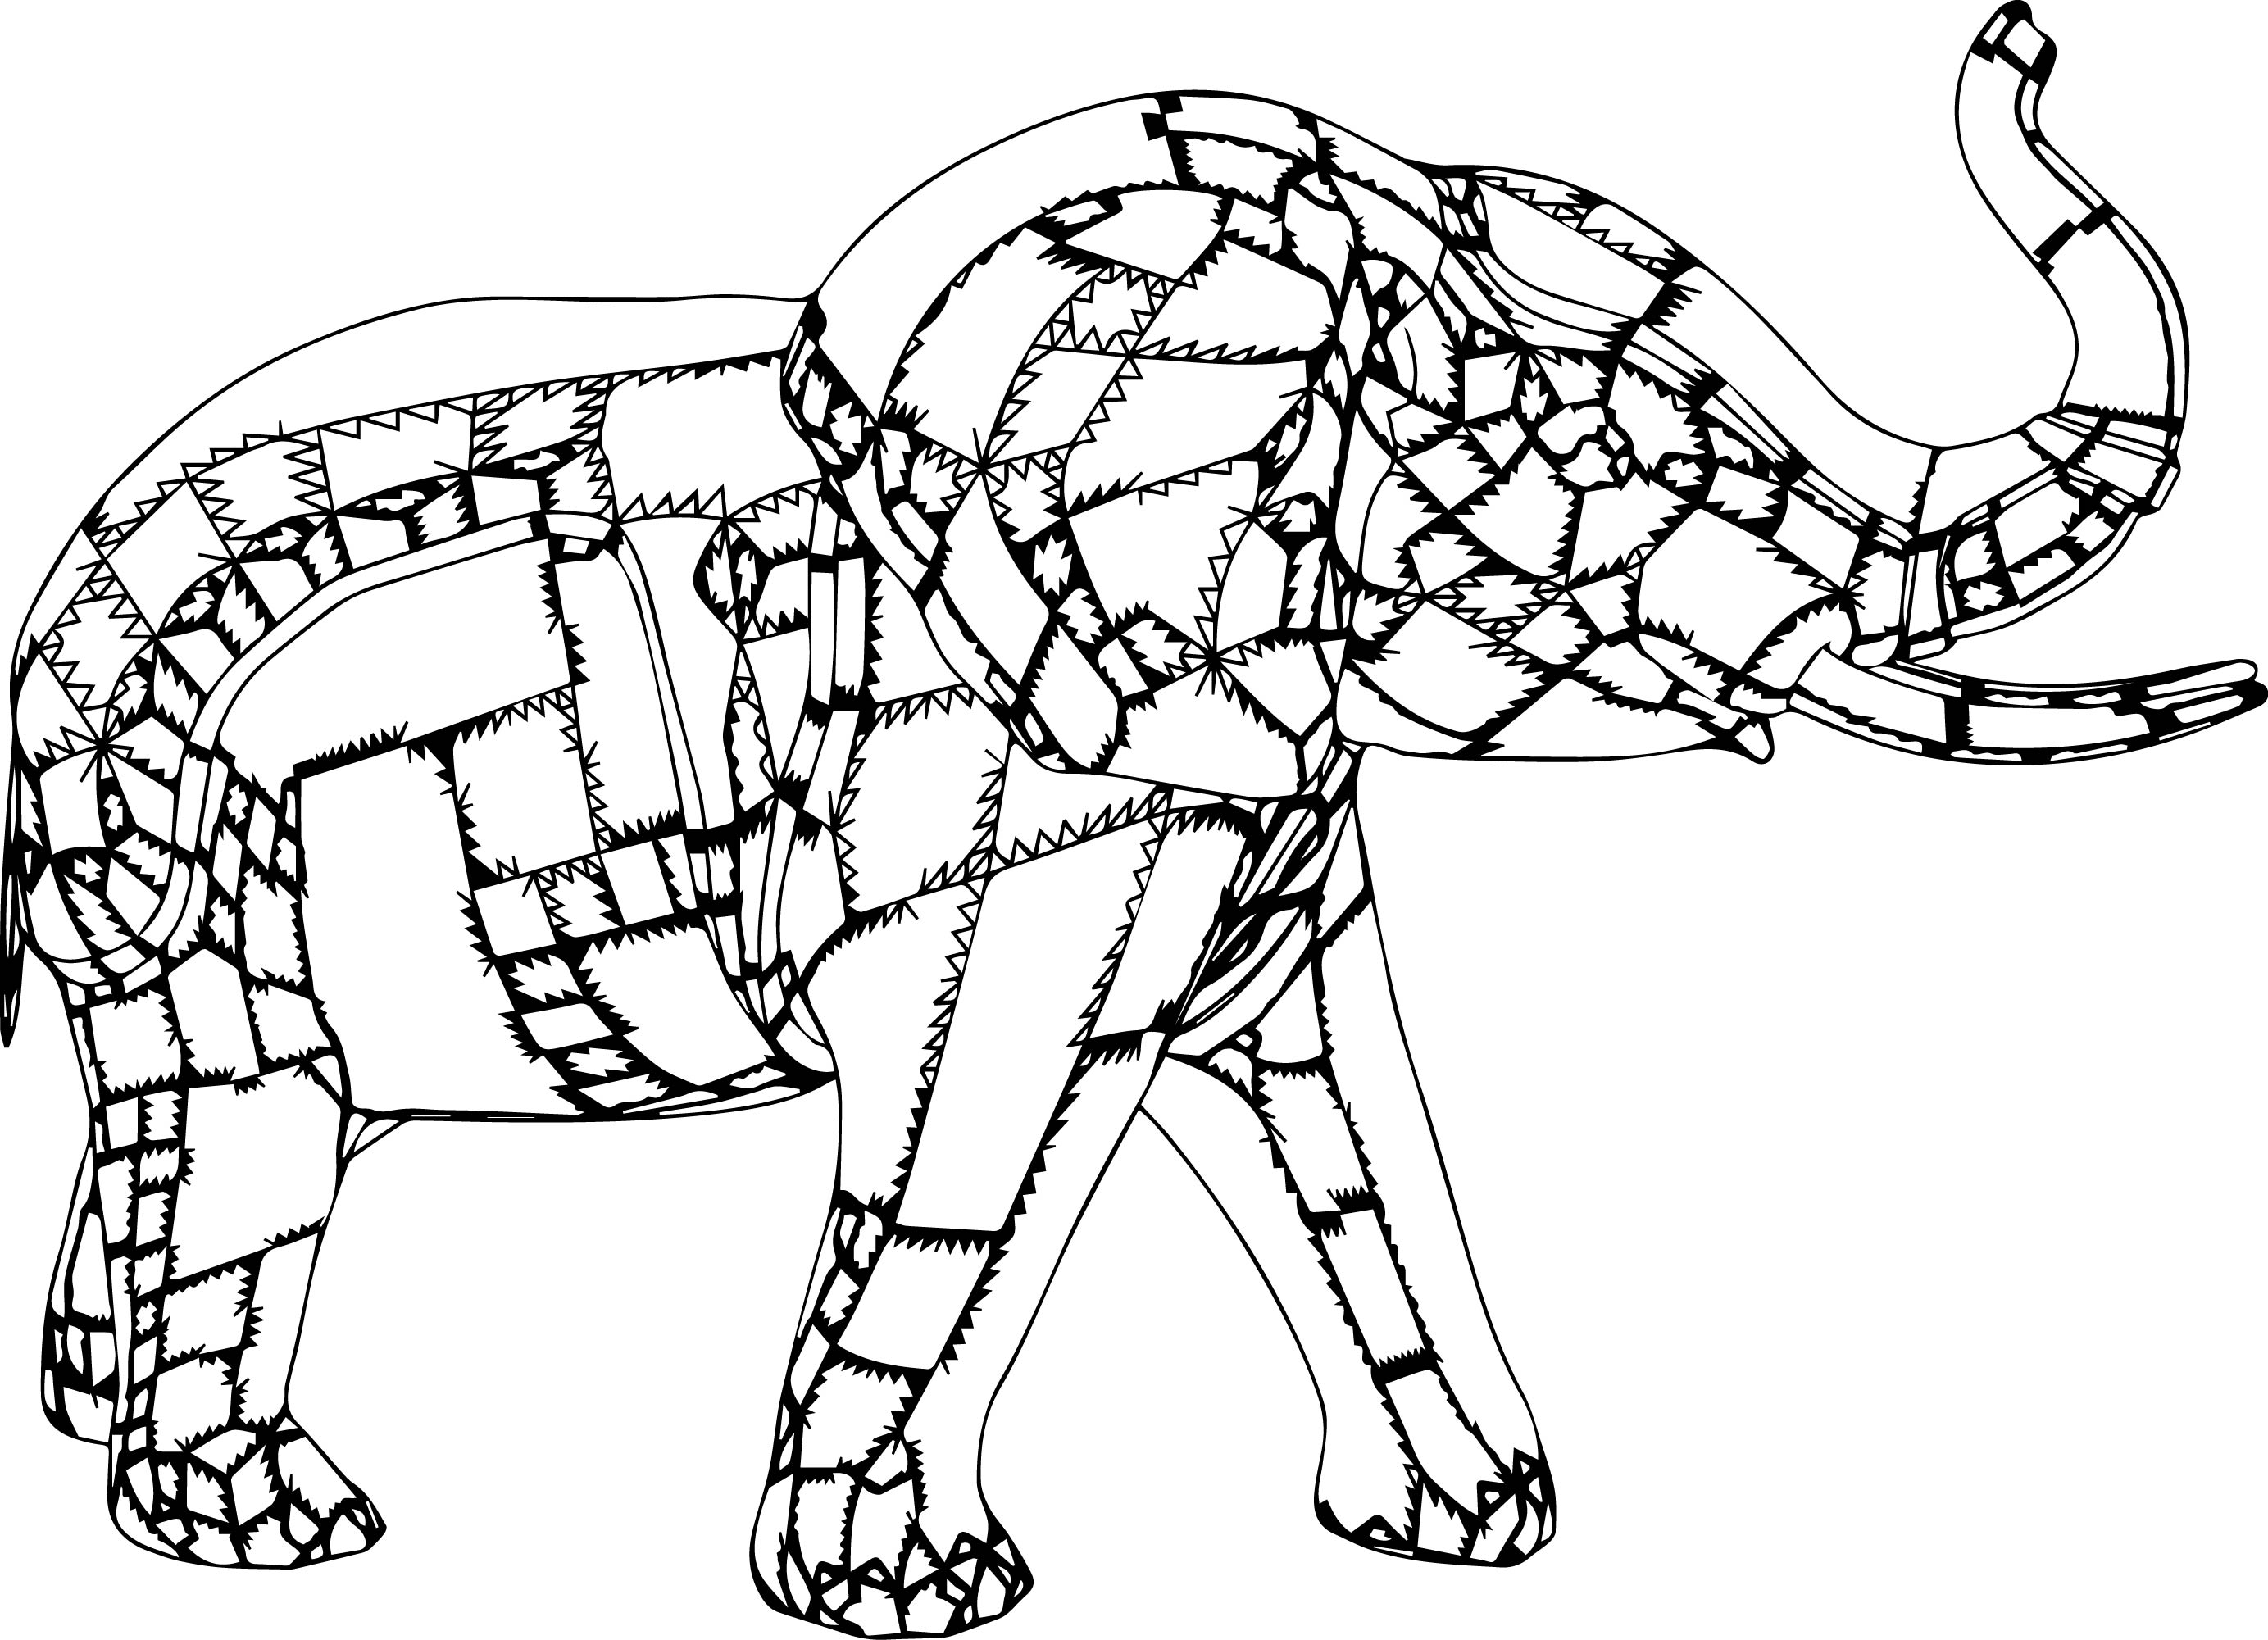 Coloring pages 4 wheeler - Free Coloring Pages Of Quads Elephant Quad Coloring Page